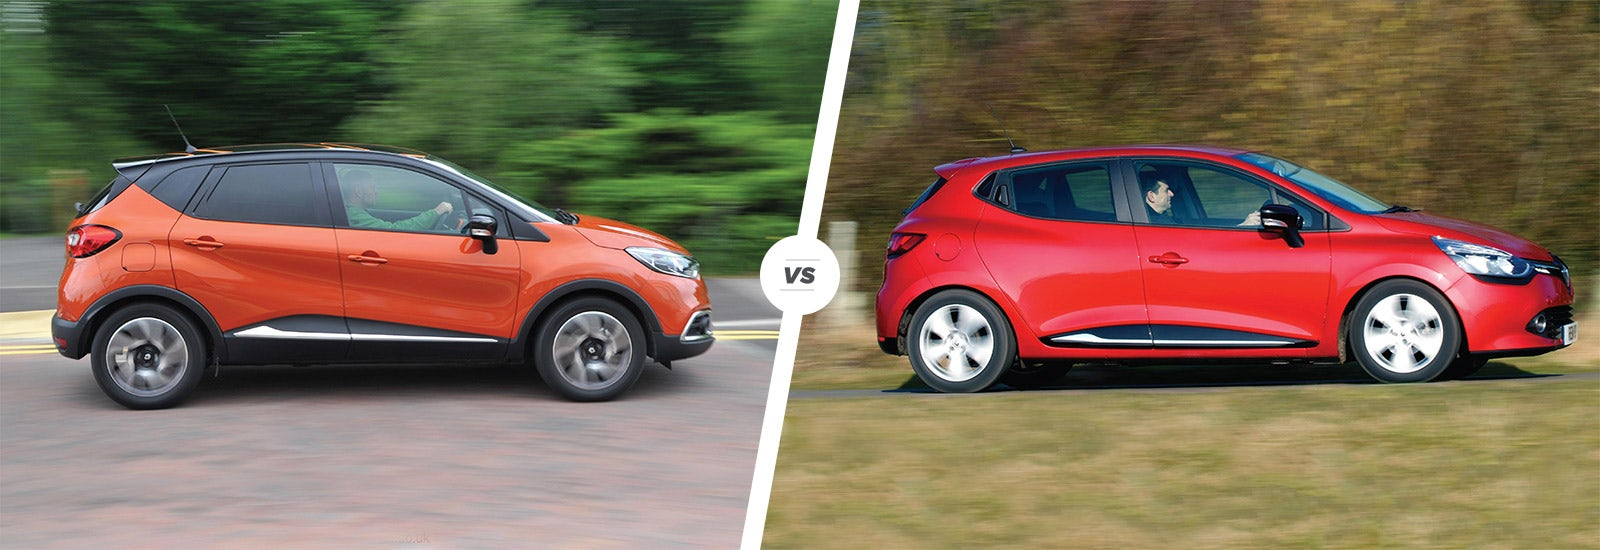 Renault Captur Vs Clio Sibling Show Down Carwow